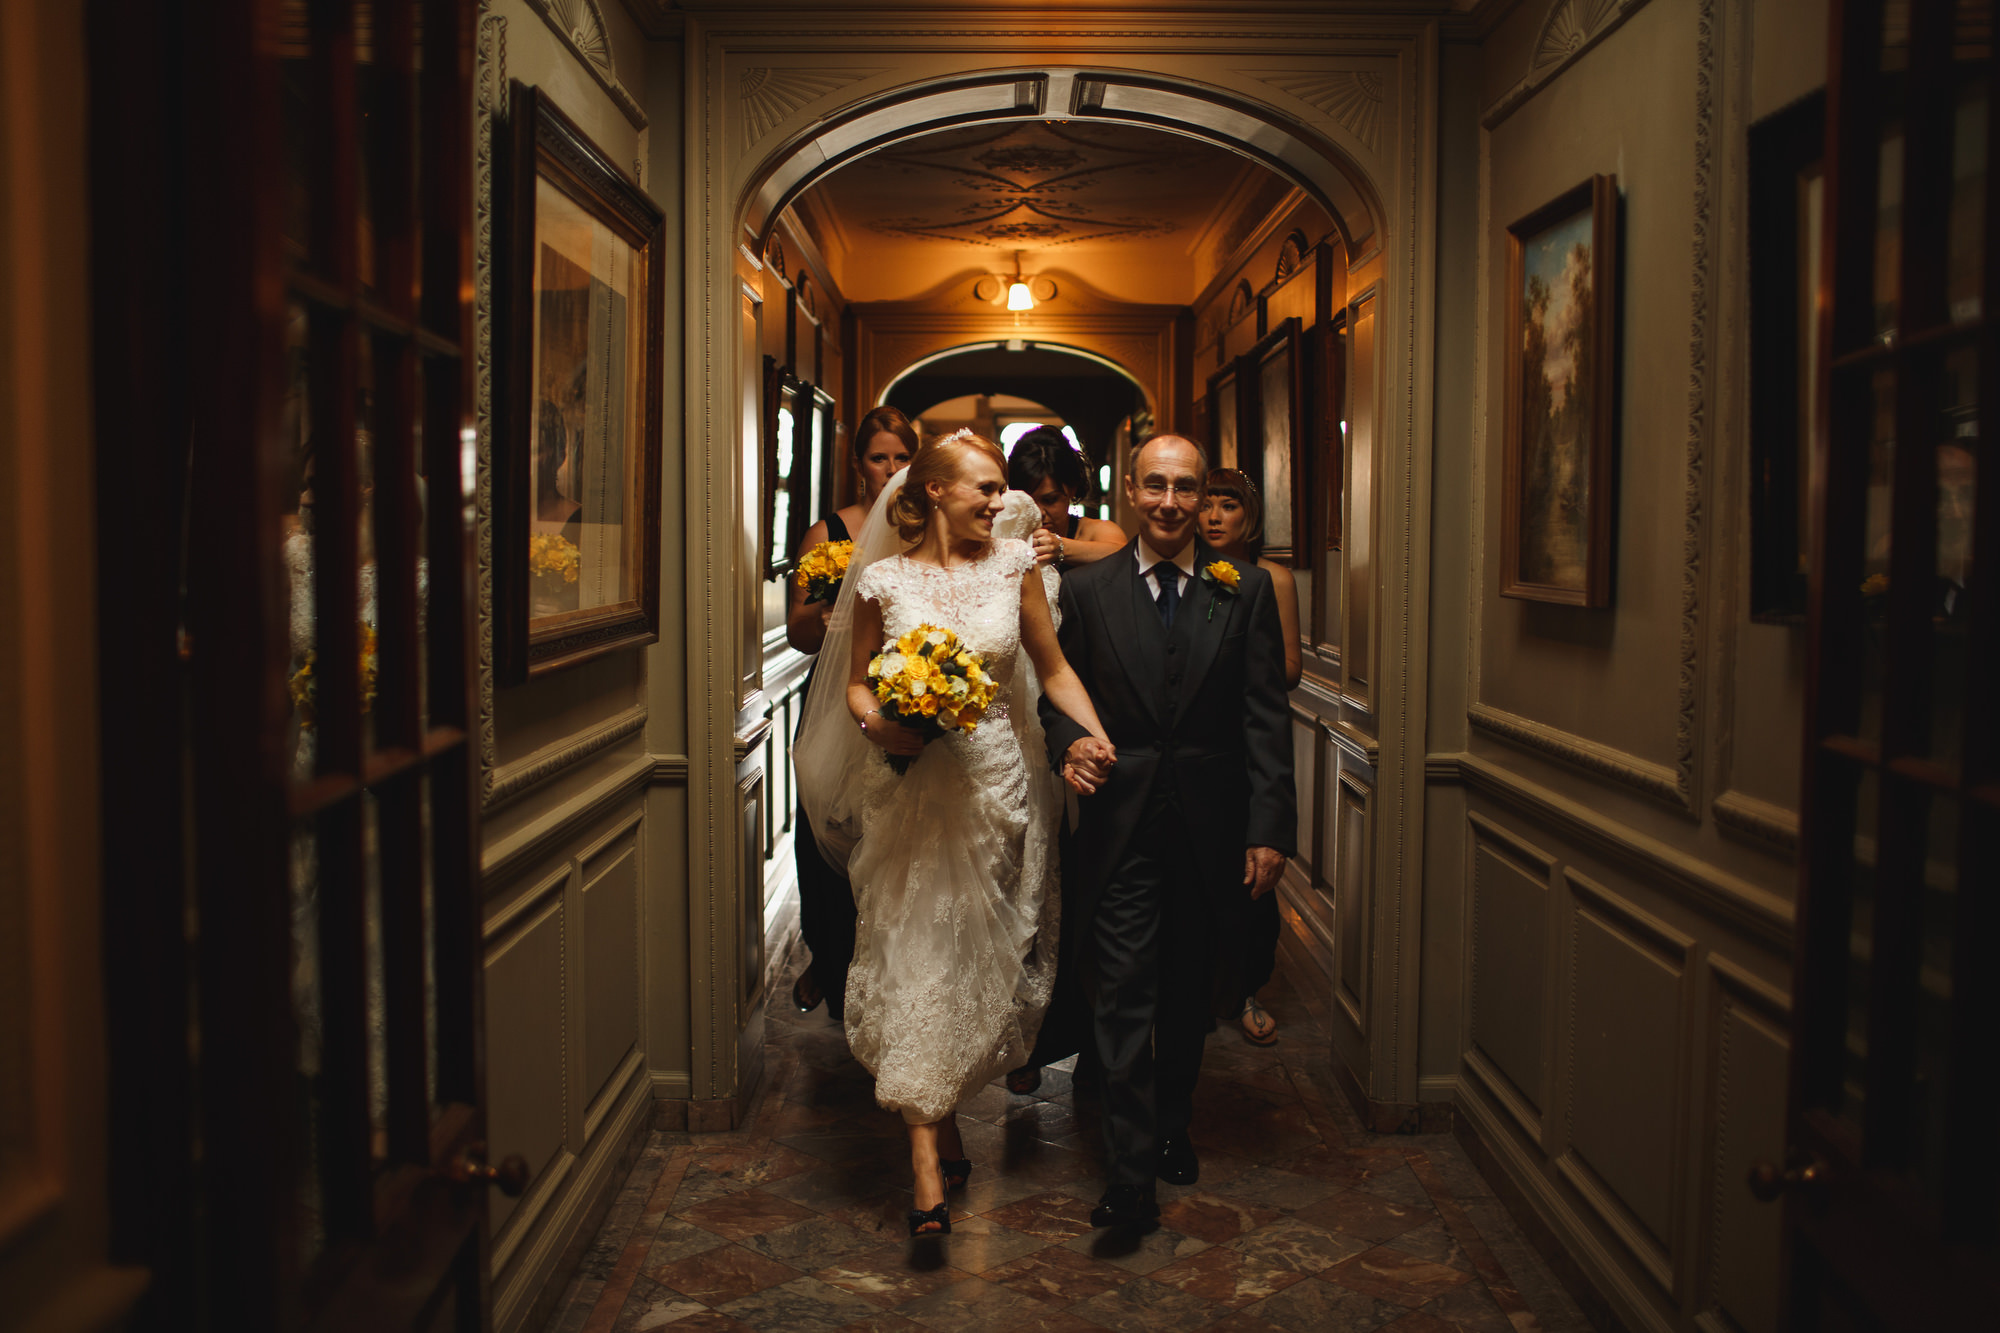 thornton-manor-wedding-photography-sarah-rich-15